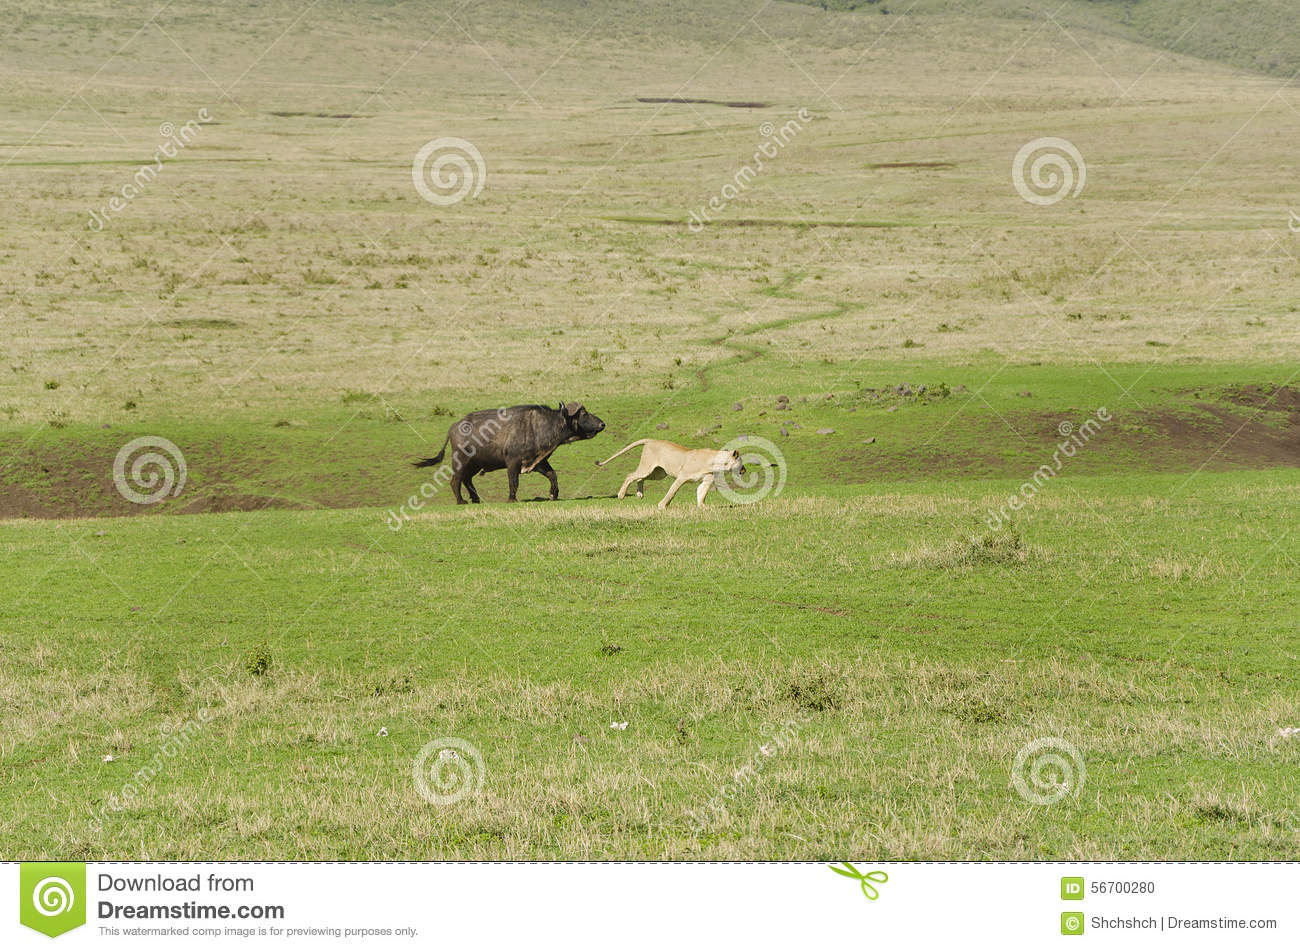 The Pride Of Lions Hunting Of Buffalo Stock Photo - Image of